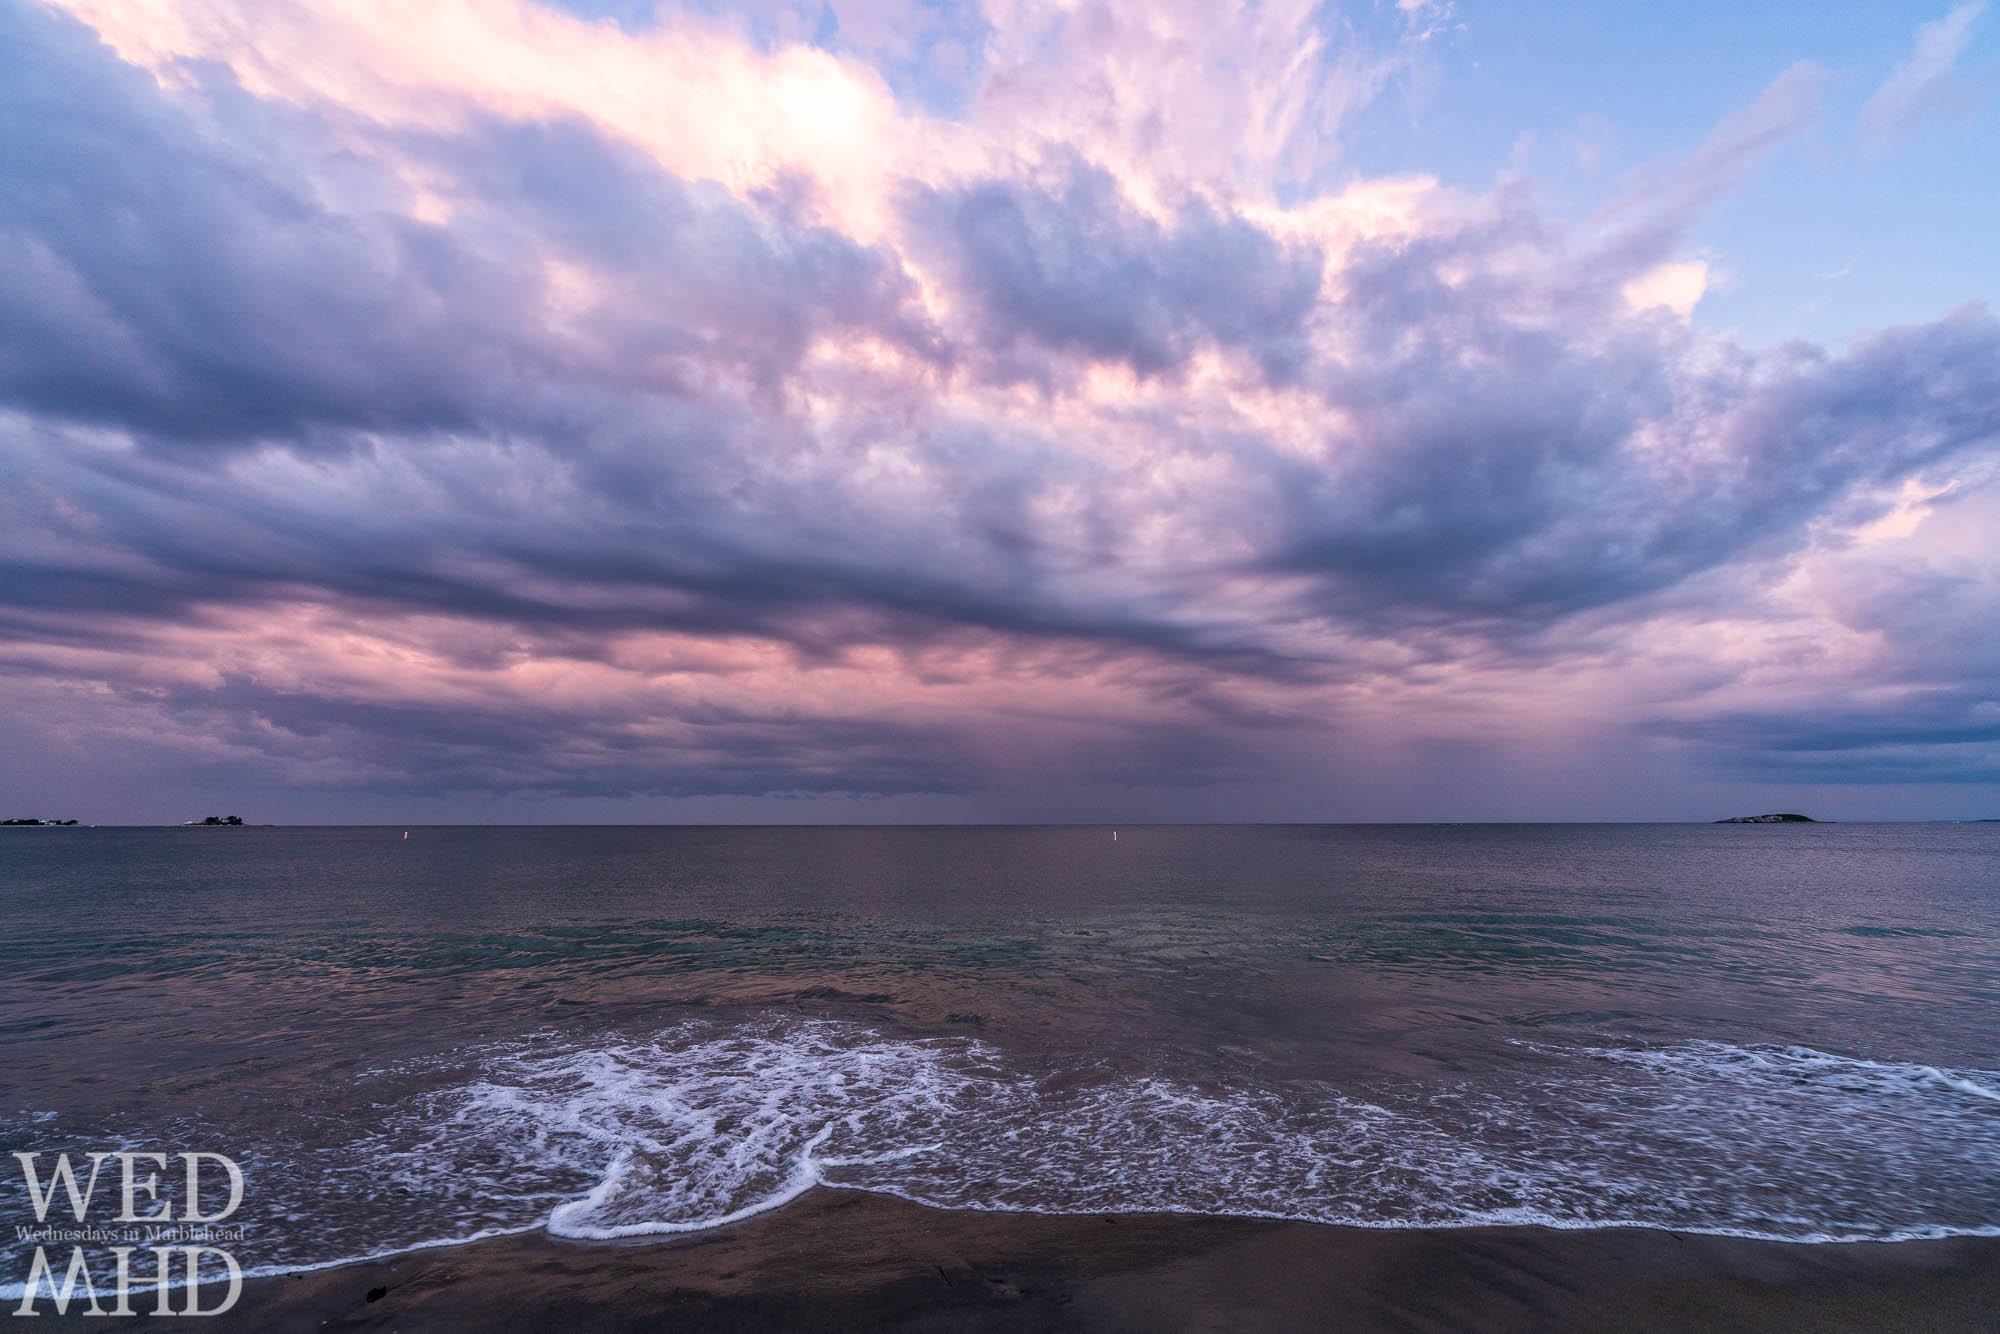 White foam comes ashore on a calm evening in Marblehead with purple light shining overhead at Devereux Beach